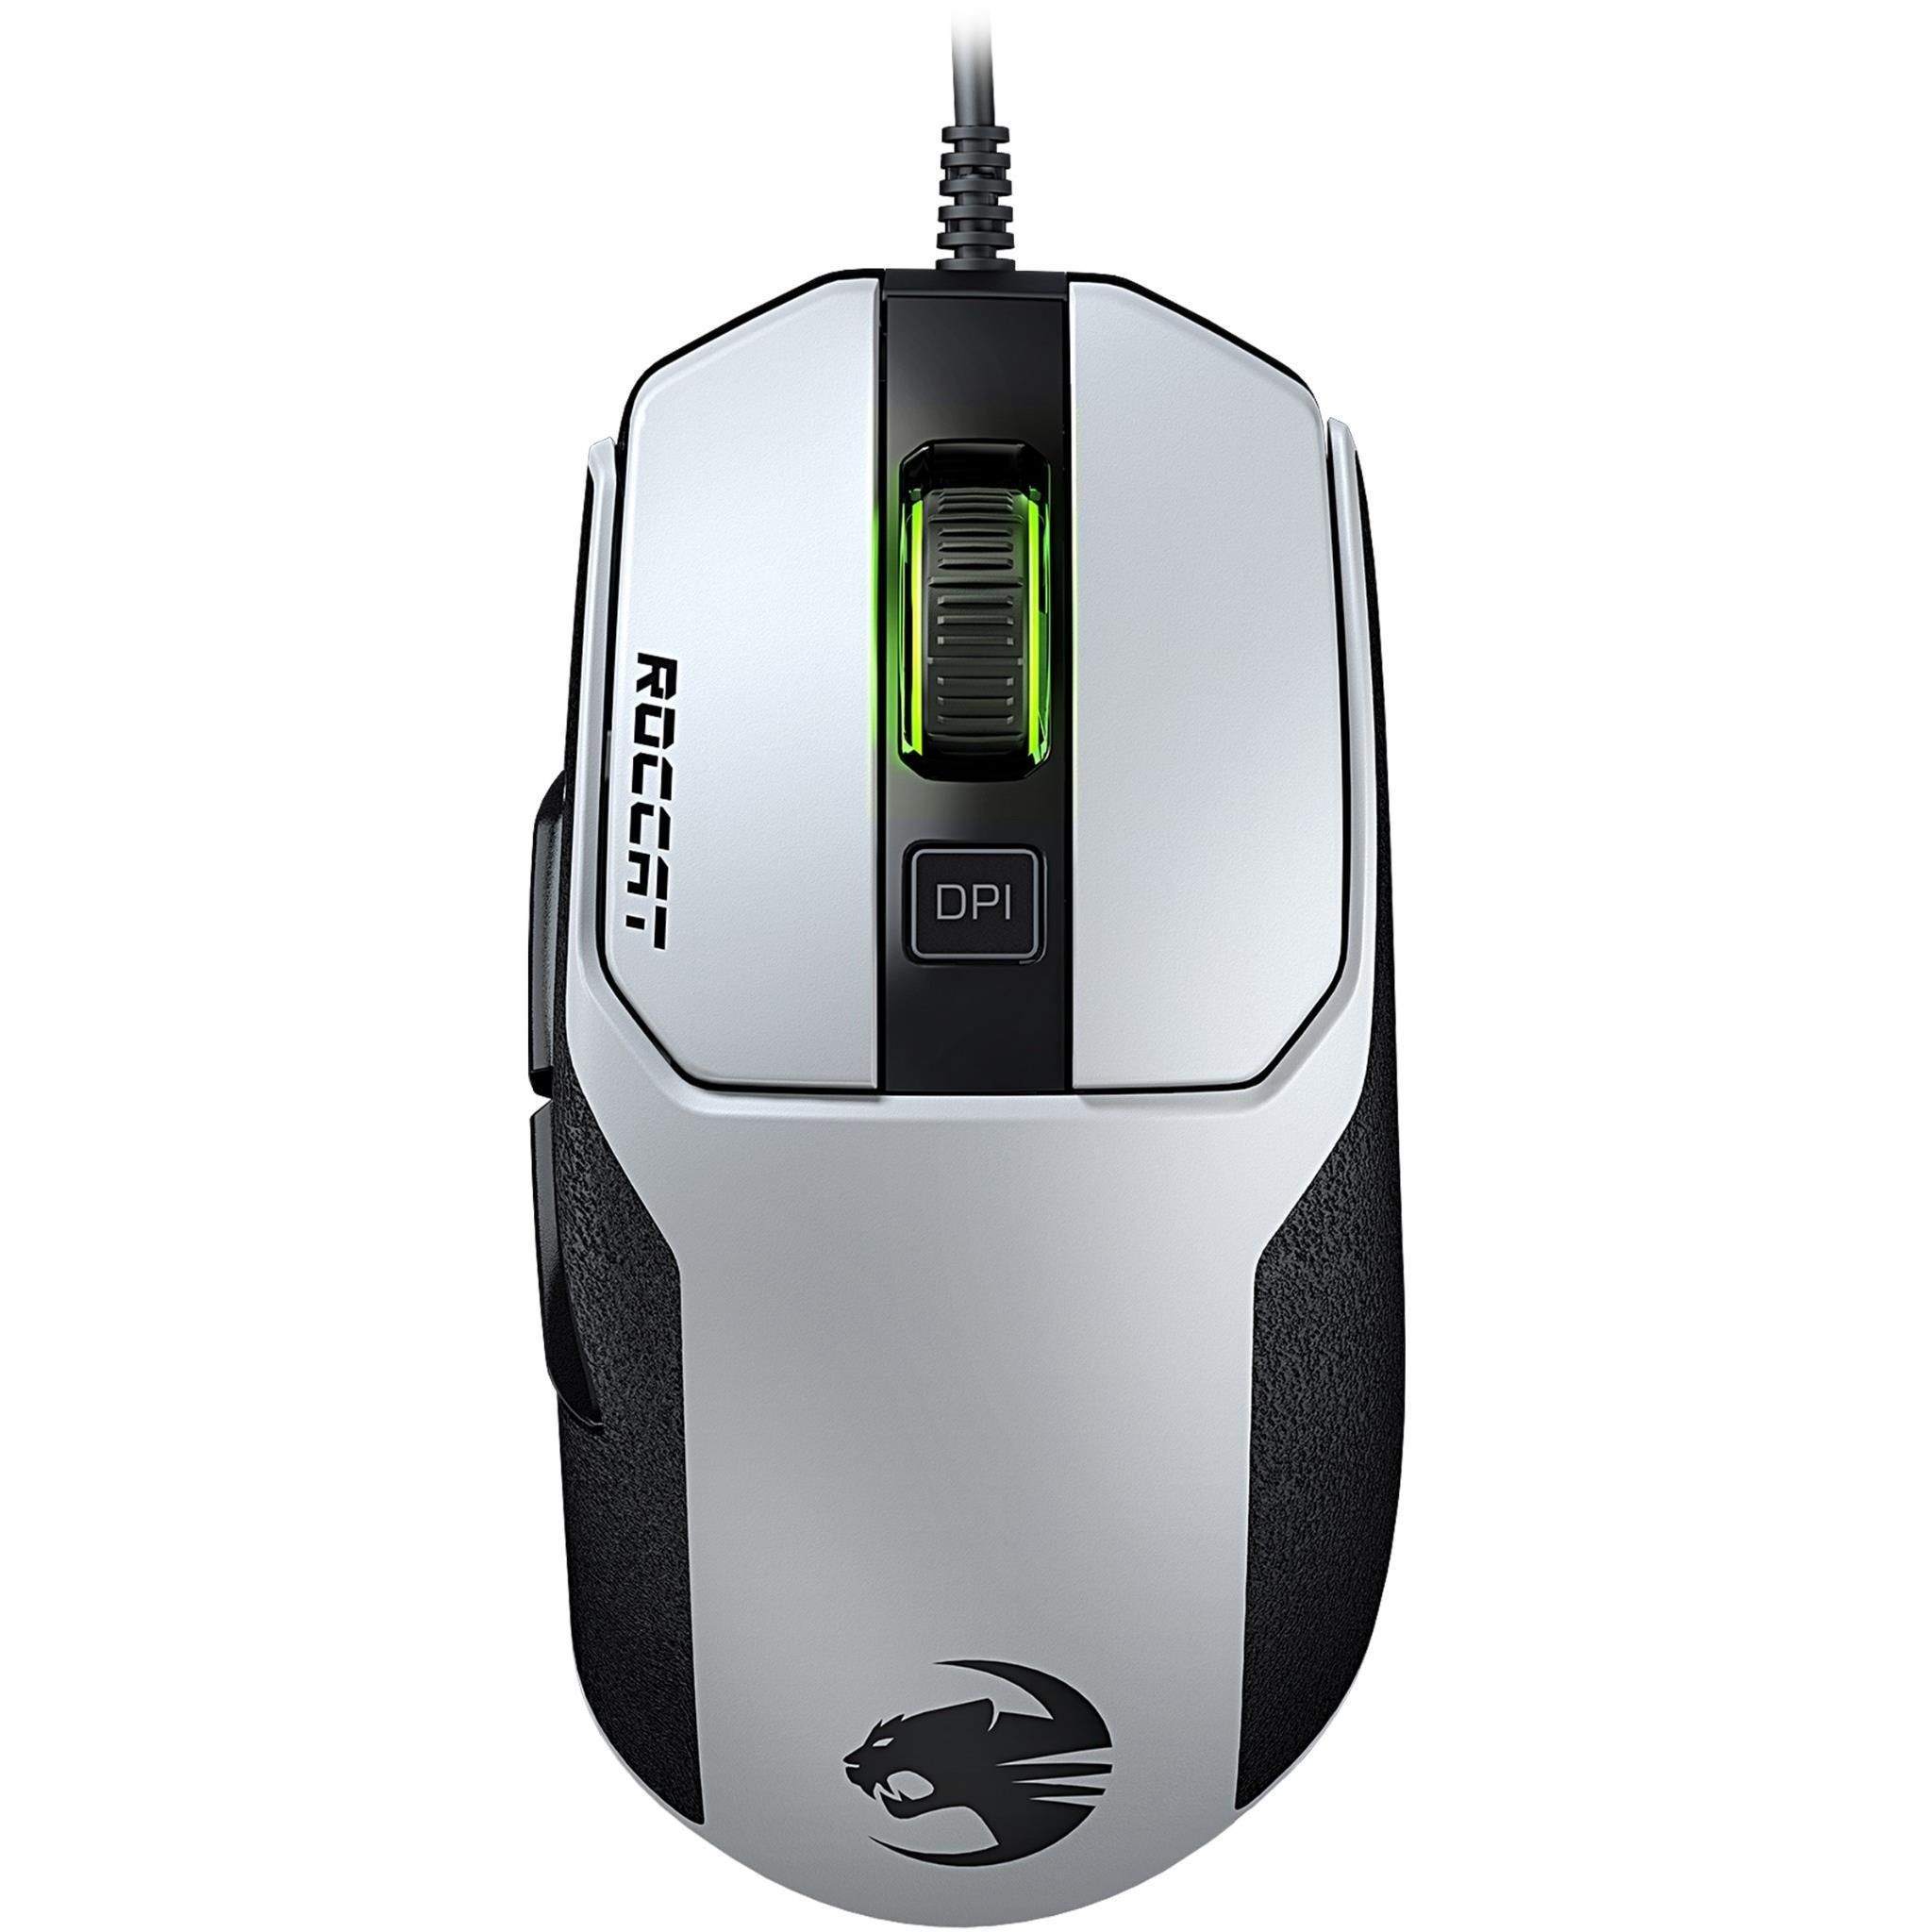 ROCCAT Kain 102 AIMO RGB Gaming Mouse (White)